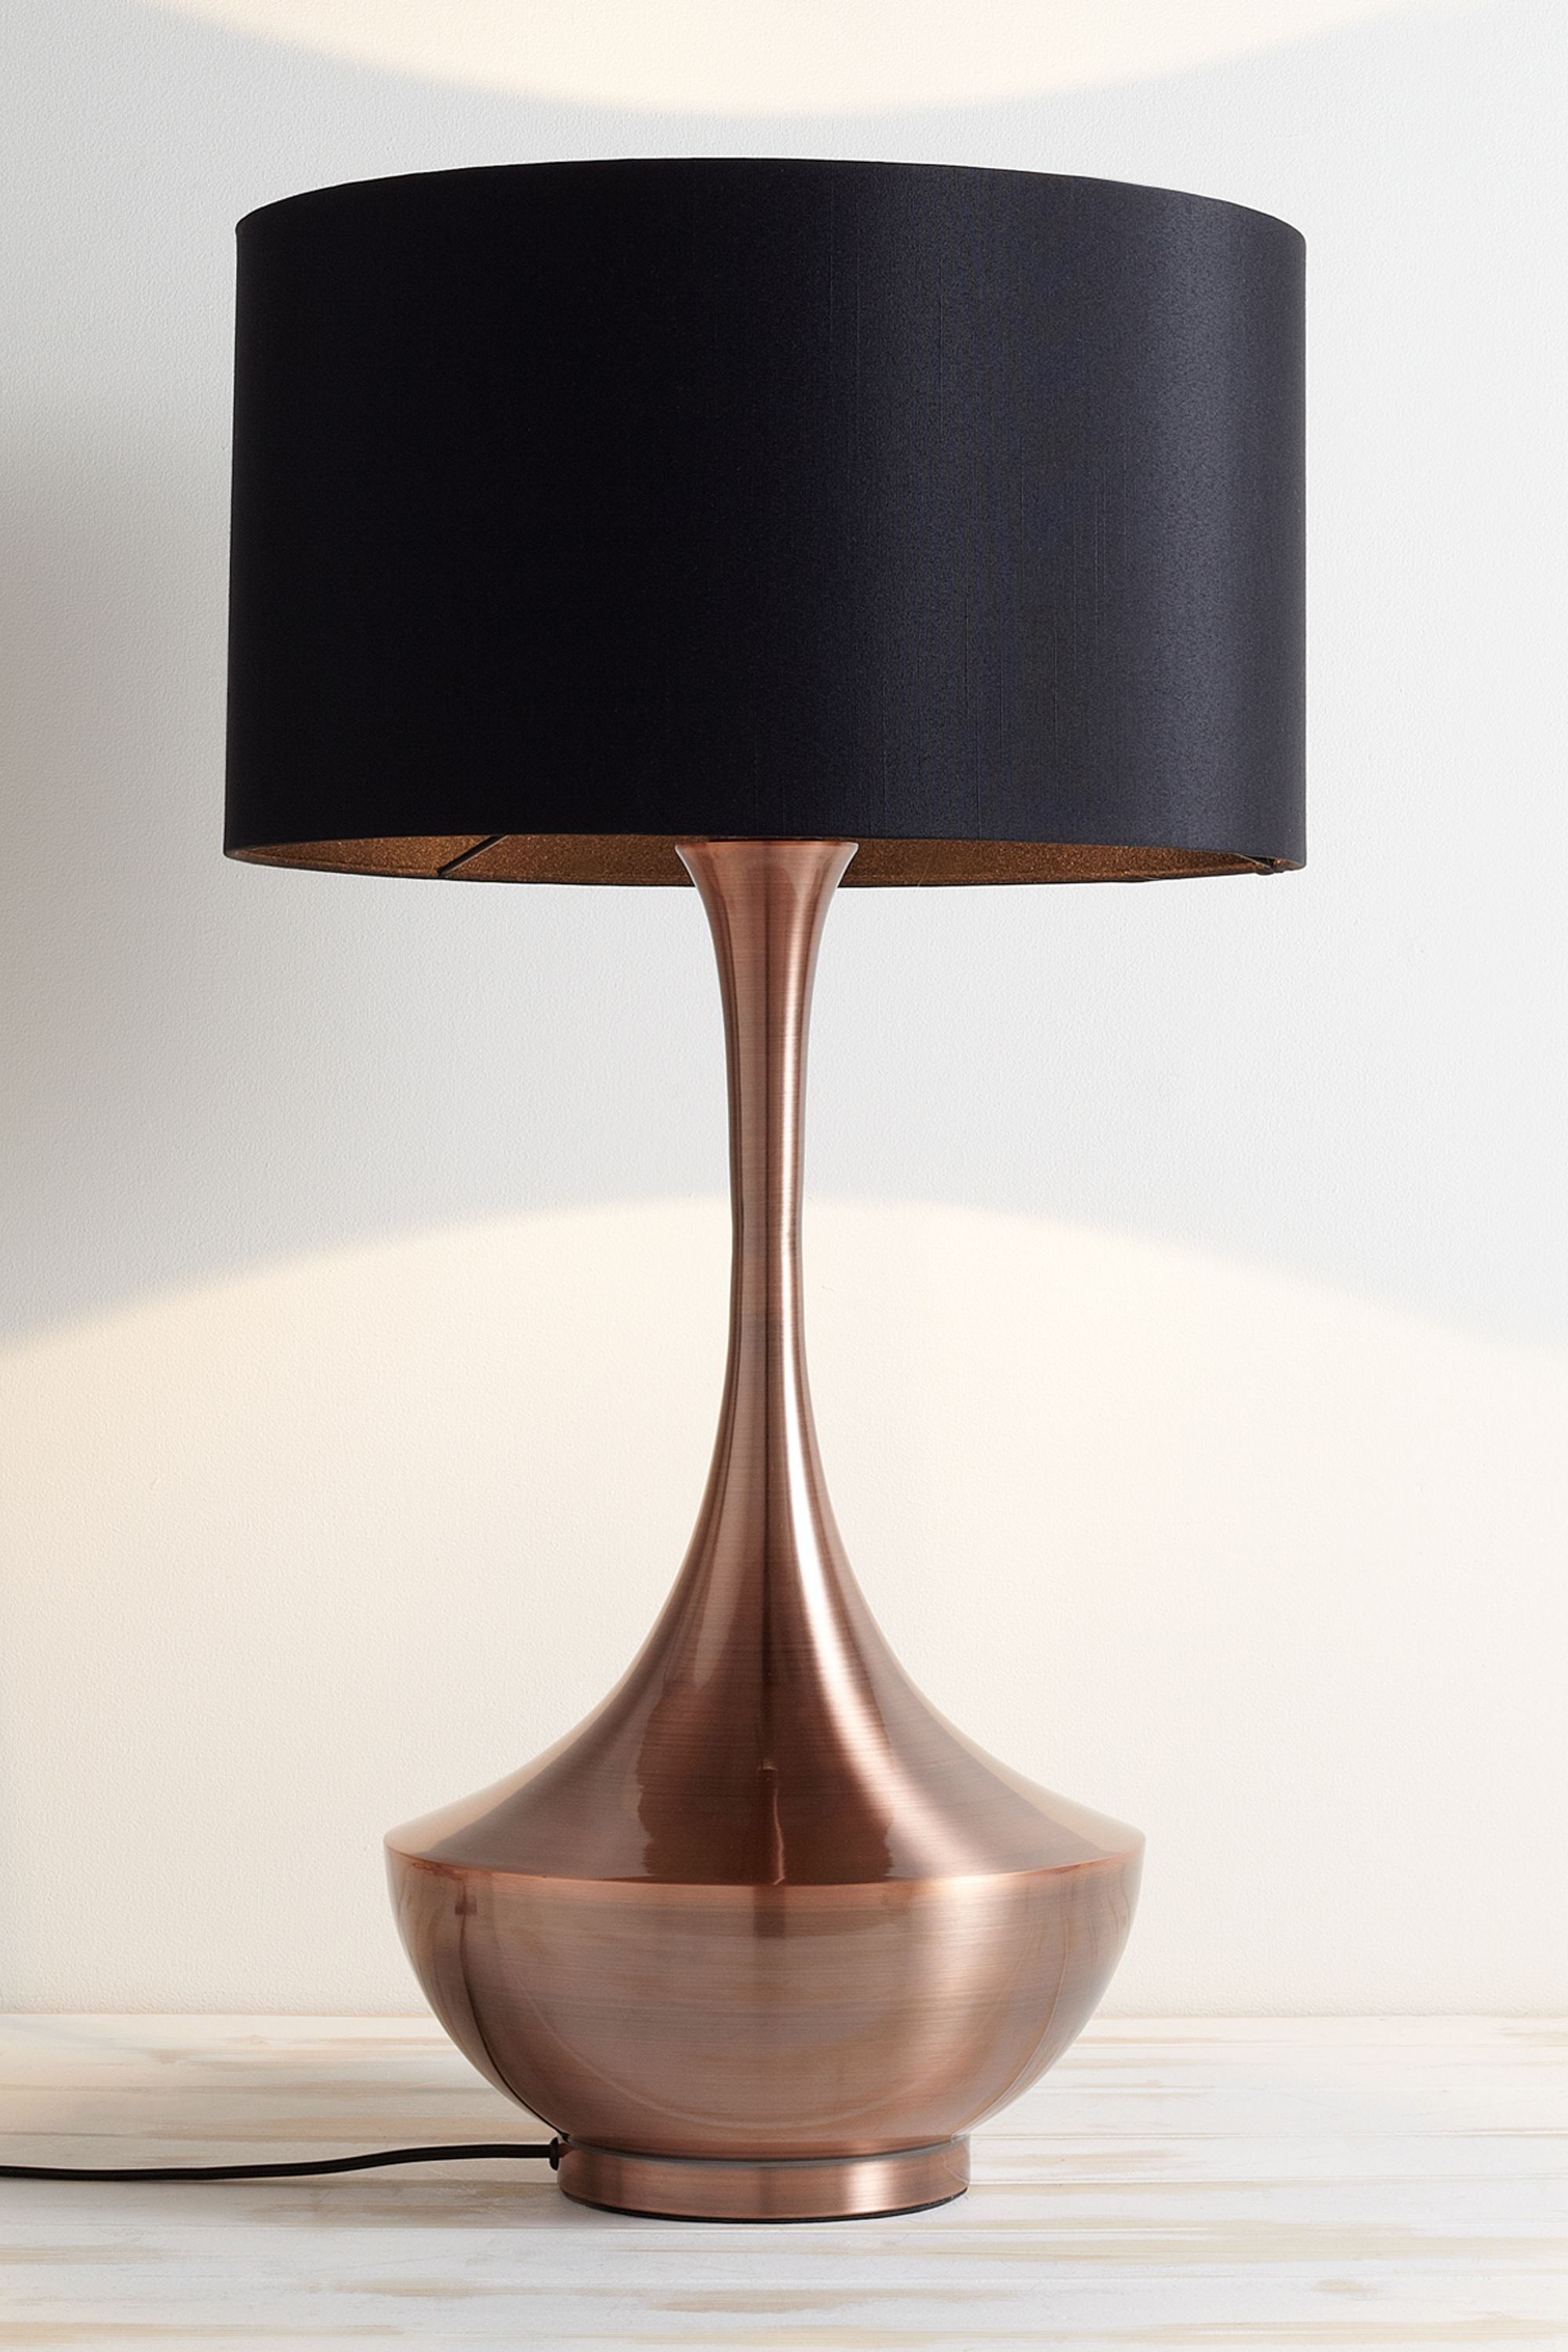 Brock table lamp bhs copper statement lamp with a metallic shine brock table lamp bhs copper statement lamp with a metallic shine aloadofball Images